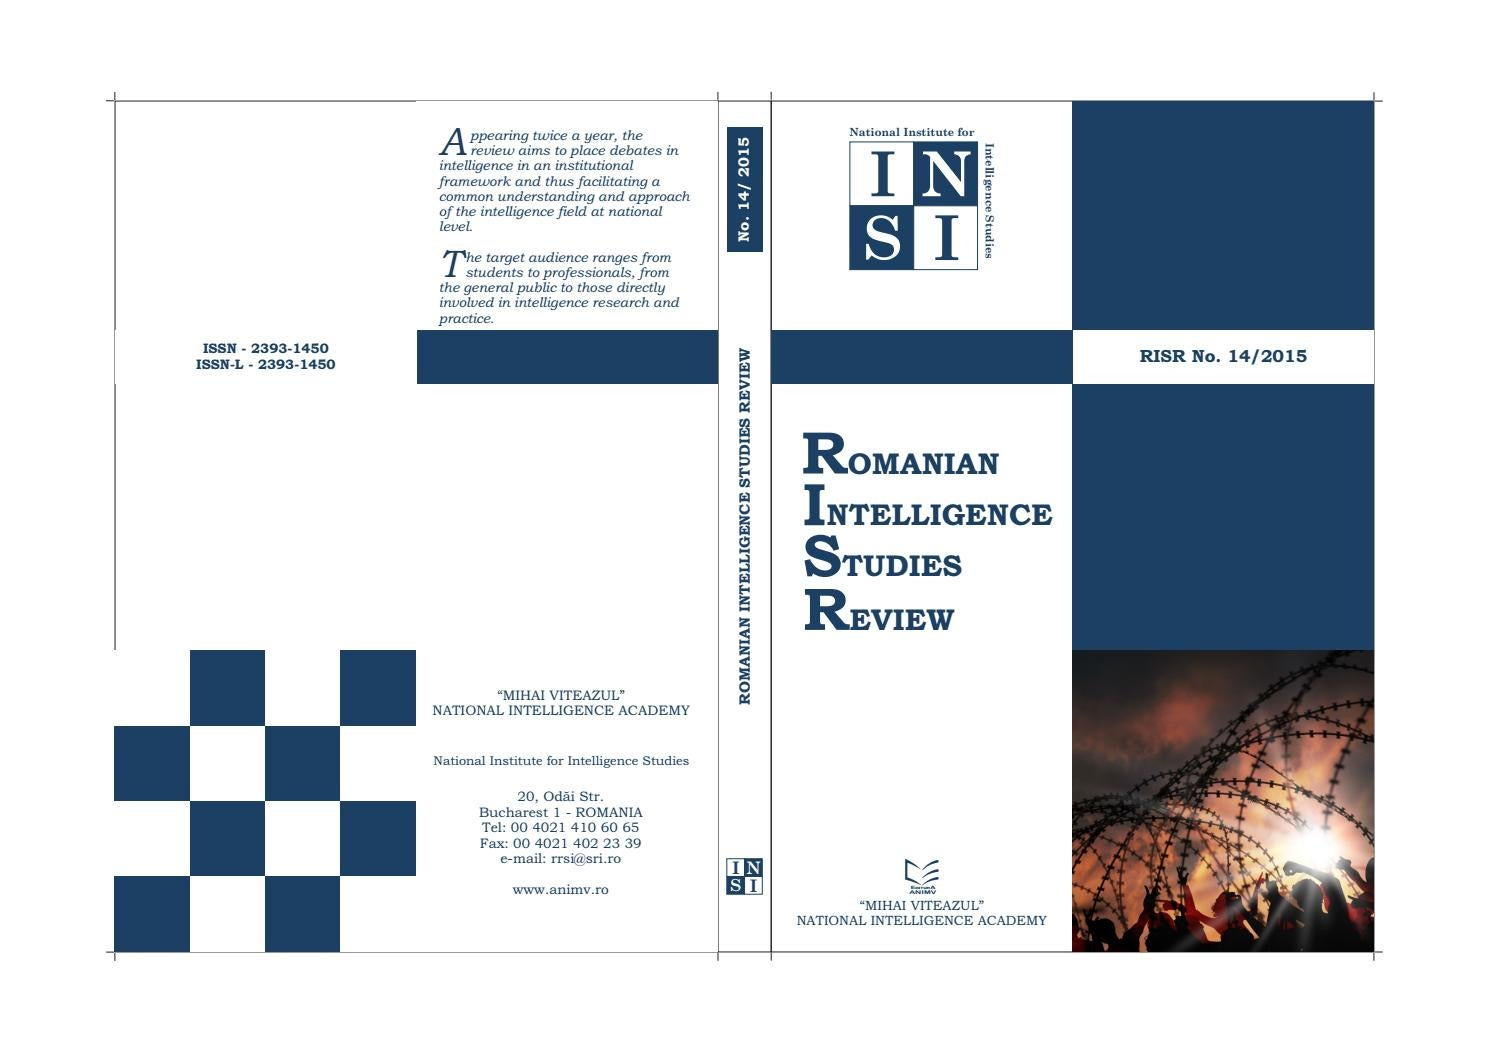 Rrsi 14 eng by ANIMV - issuu